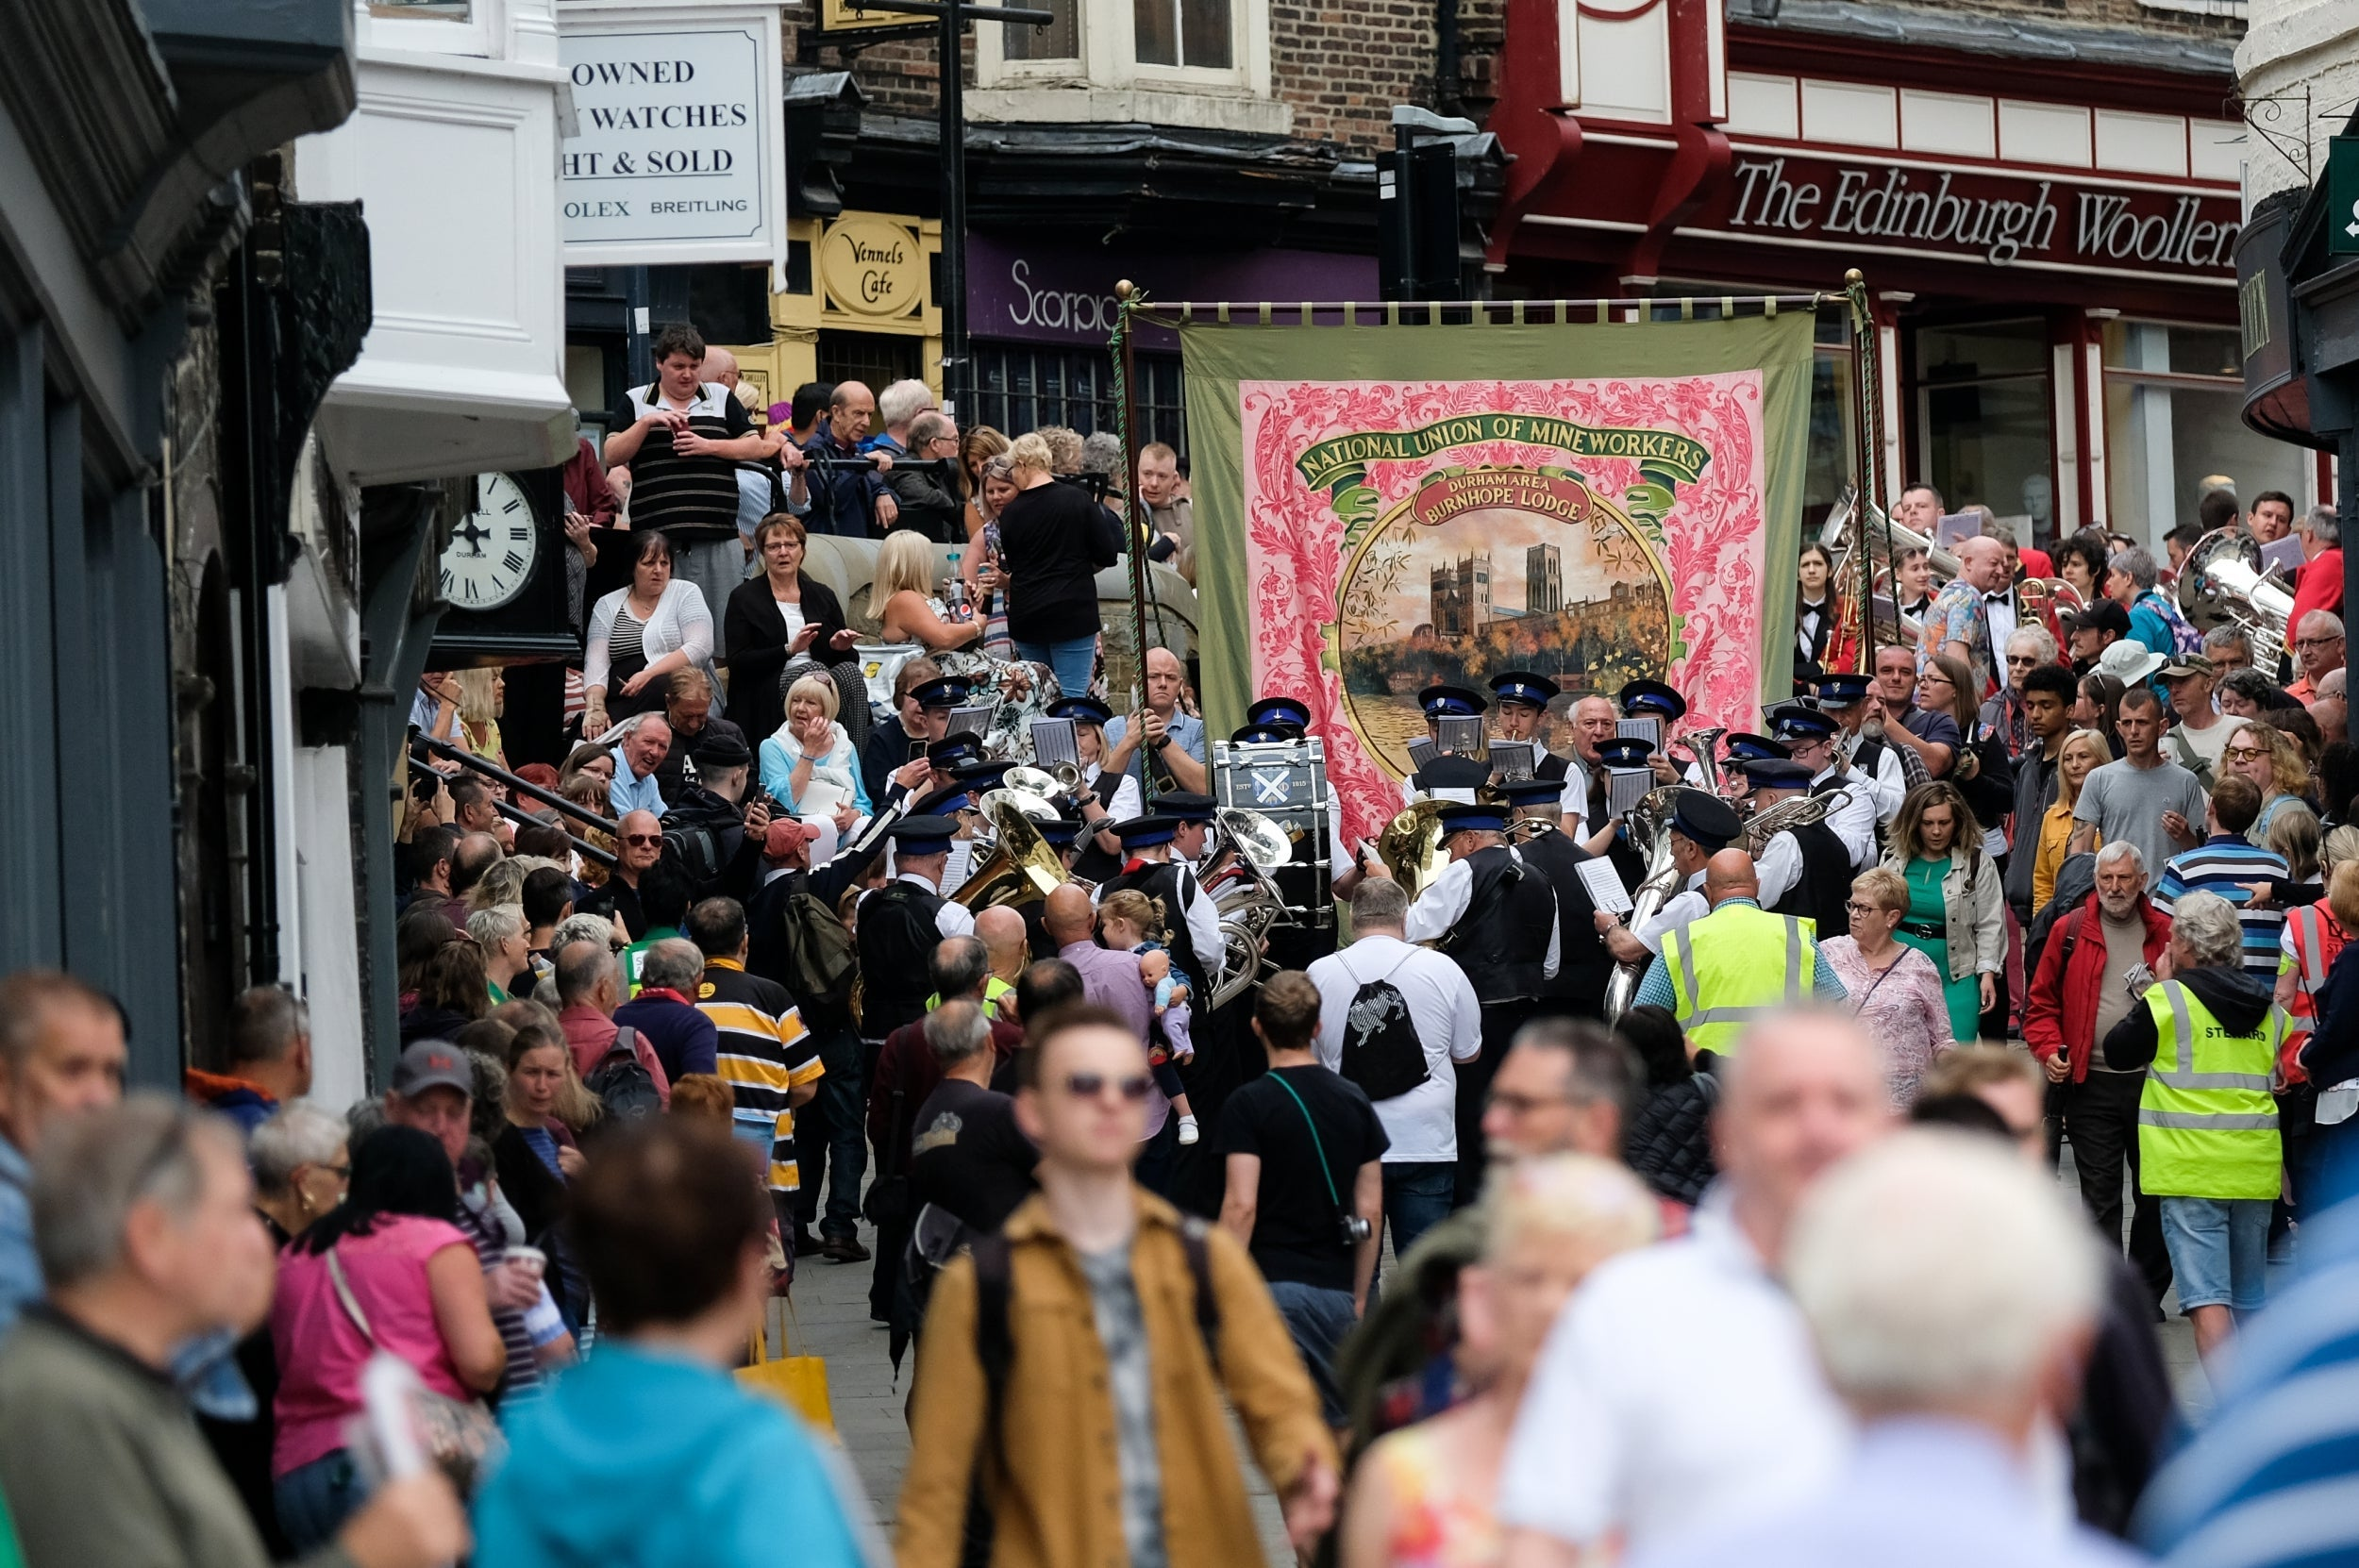 Durham Miners' Gala: Tory MP mocked for claiming Labour is 'culturally appropriating' trade union event